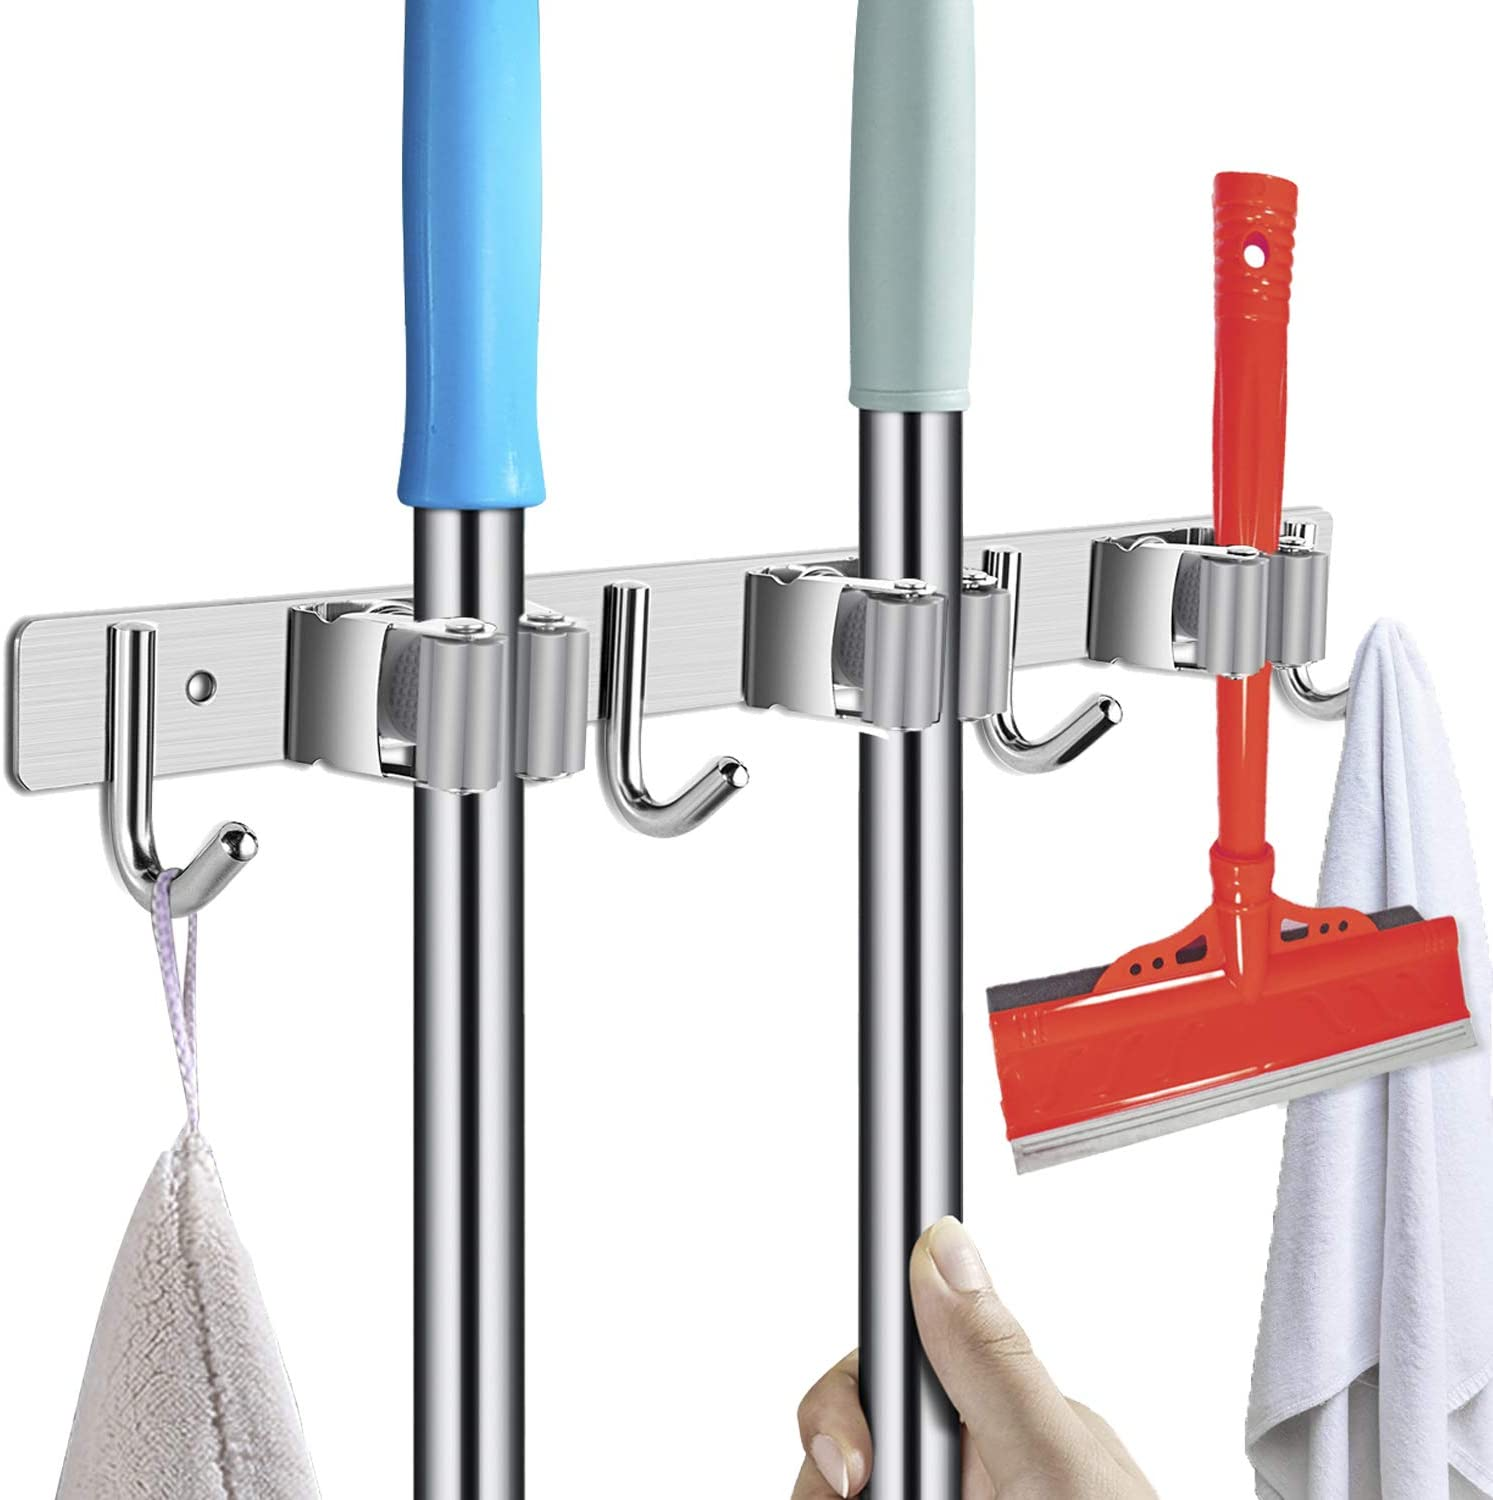 POPRUN Stainless Steel Wall Mount Broom Holder